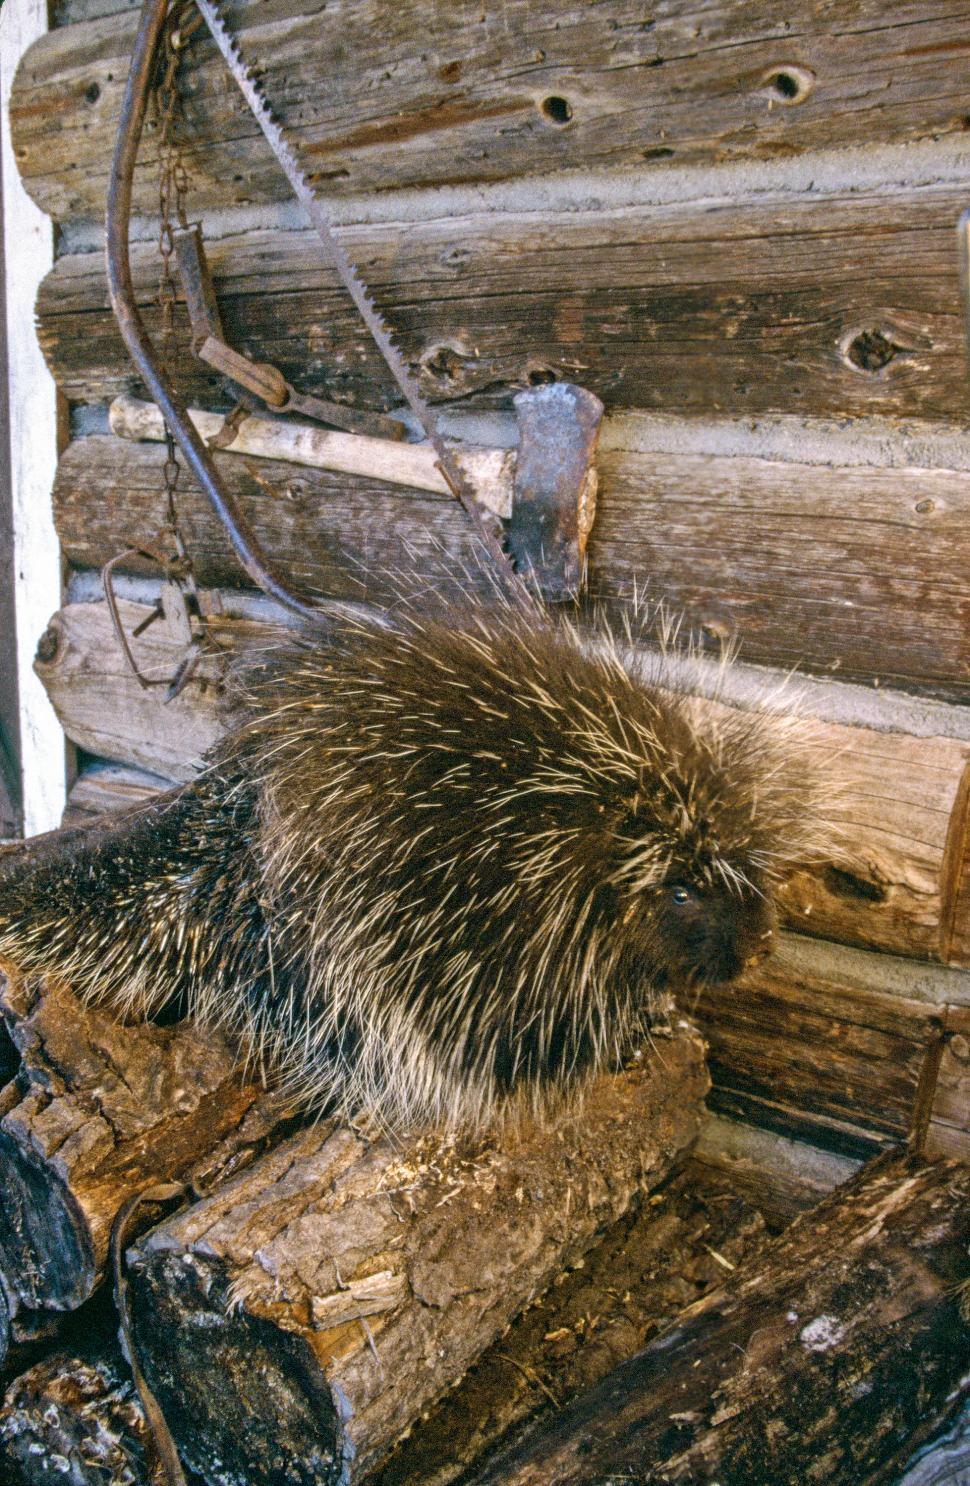 Download Free Stock Photo of Crested porcupine